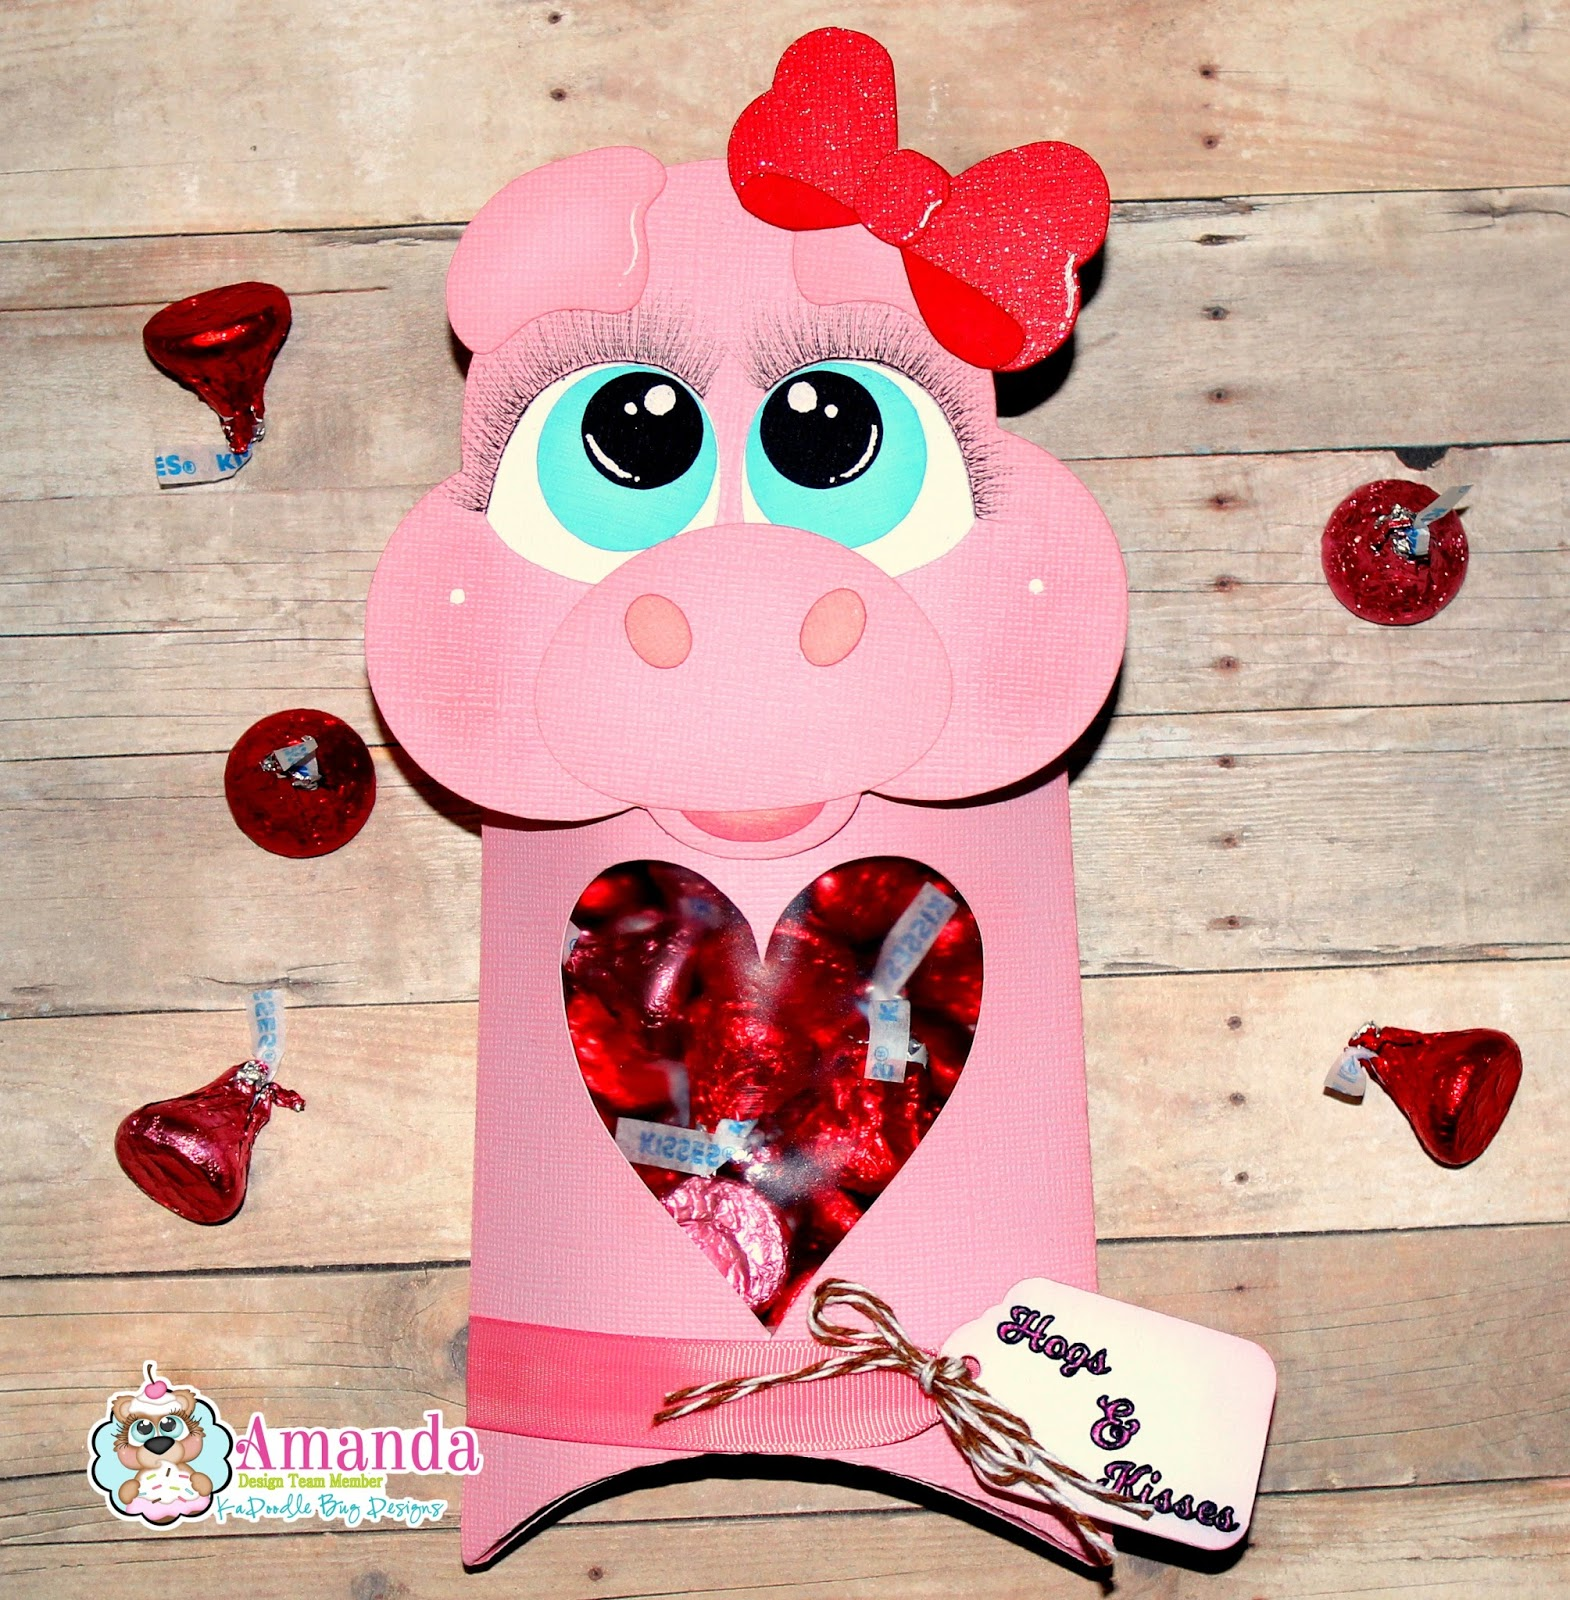 For My Project, I Wanted To Use The Girl Piggy And Thought Itu0027d Be Cute To  Make A Pillow Box Container With Hersheyu0027s Kisses Inside.